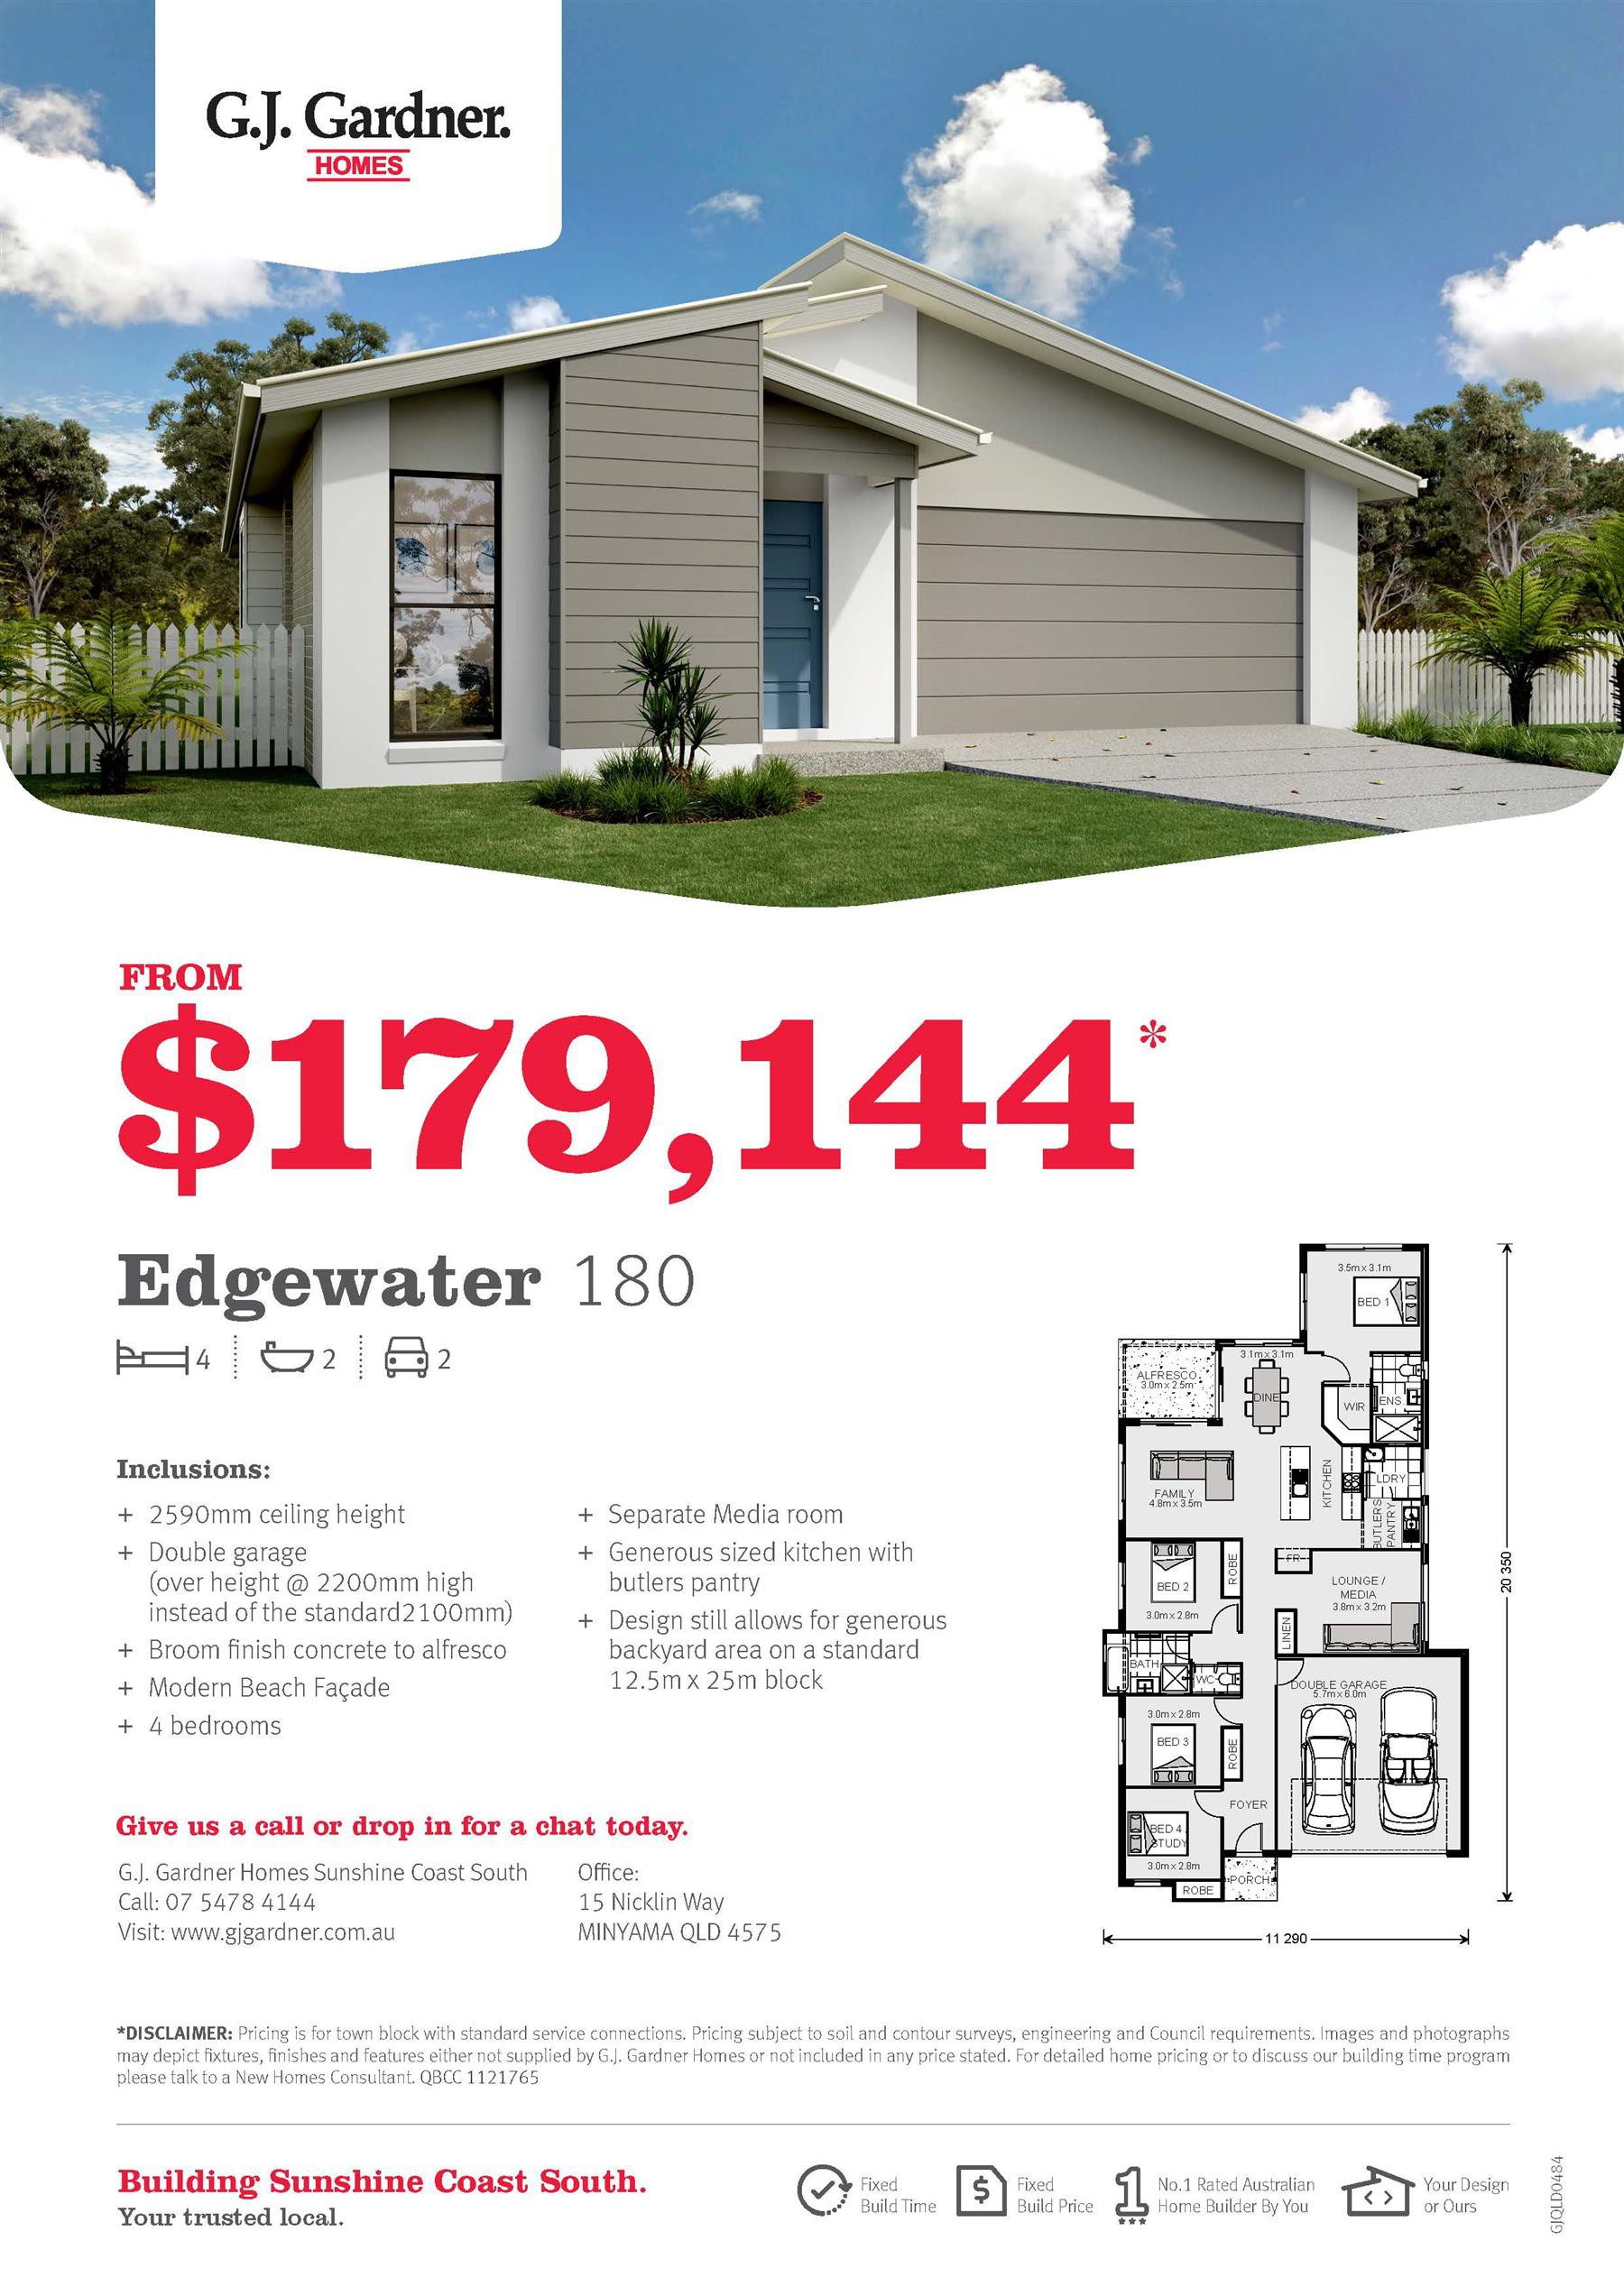 Be in your own home from $179,144